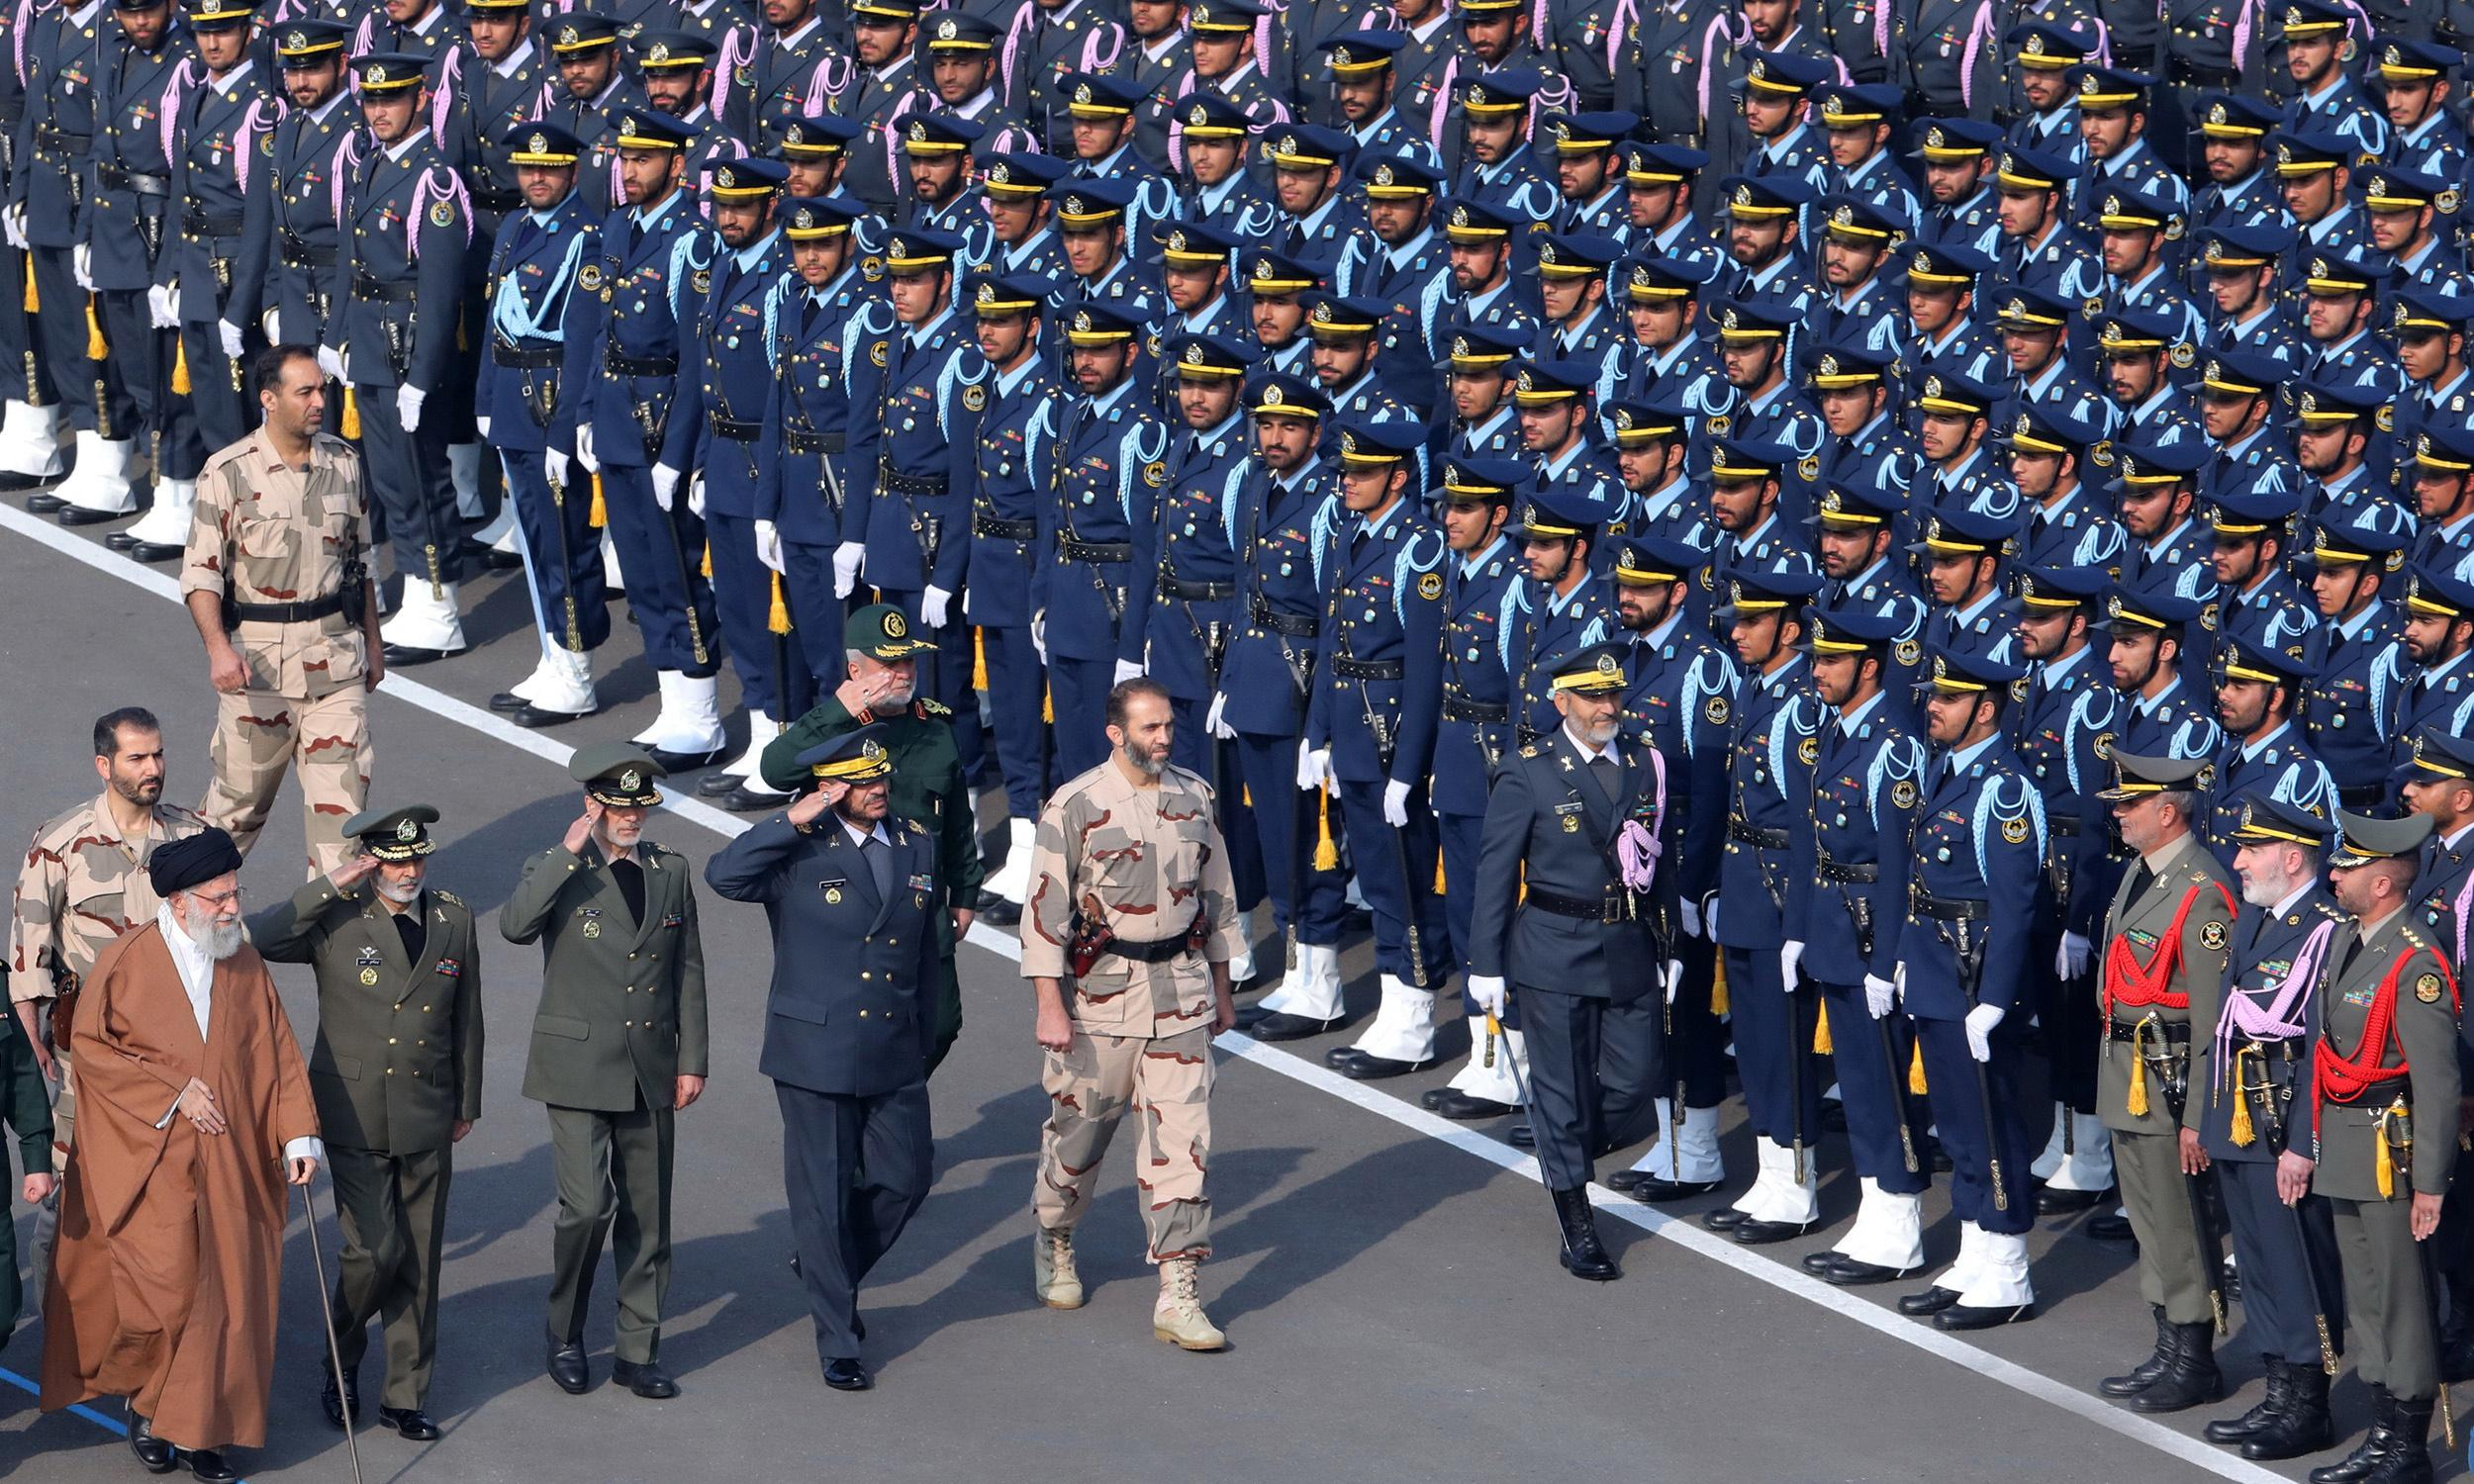 How strong is Iran's military?